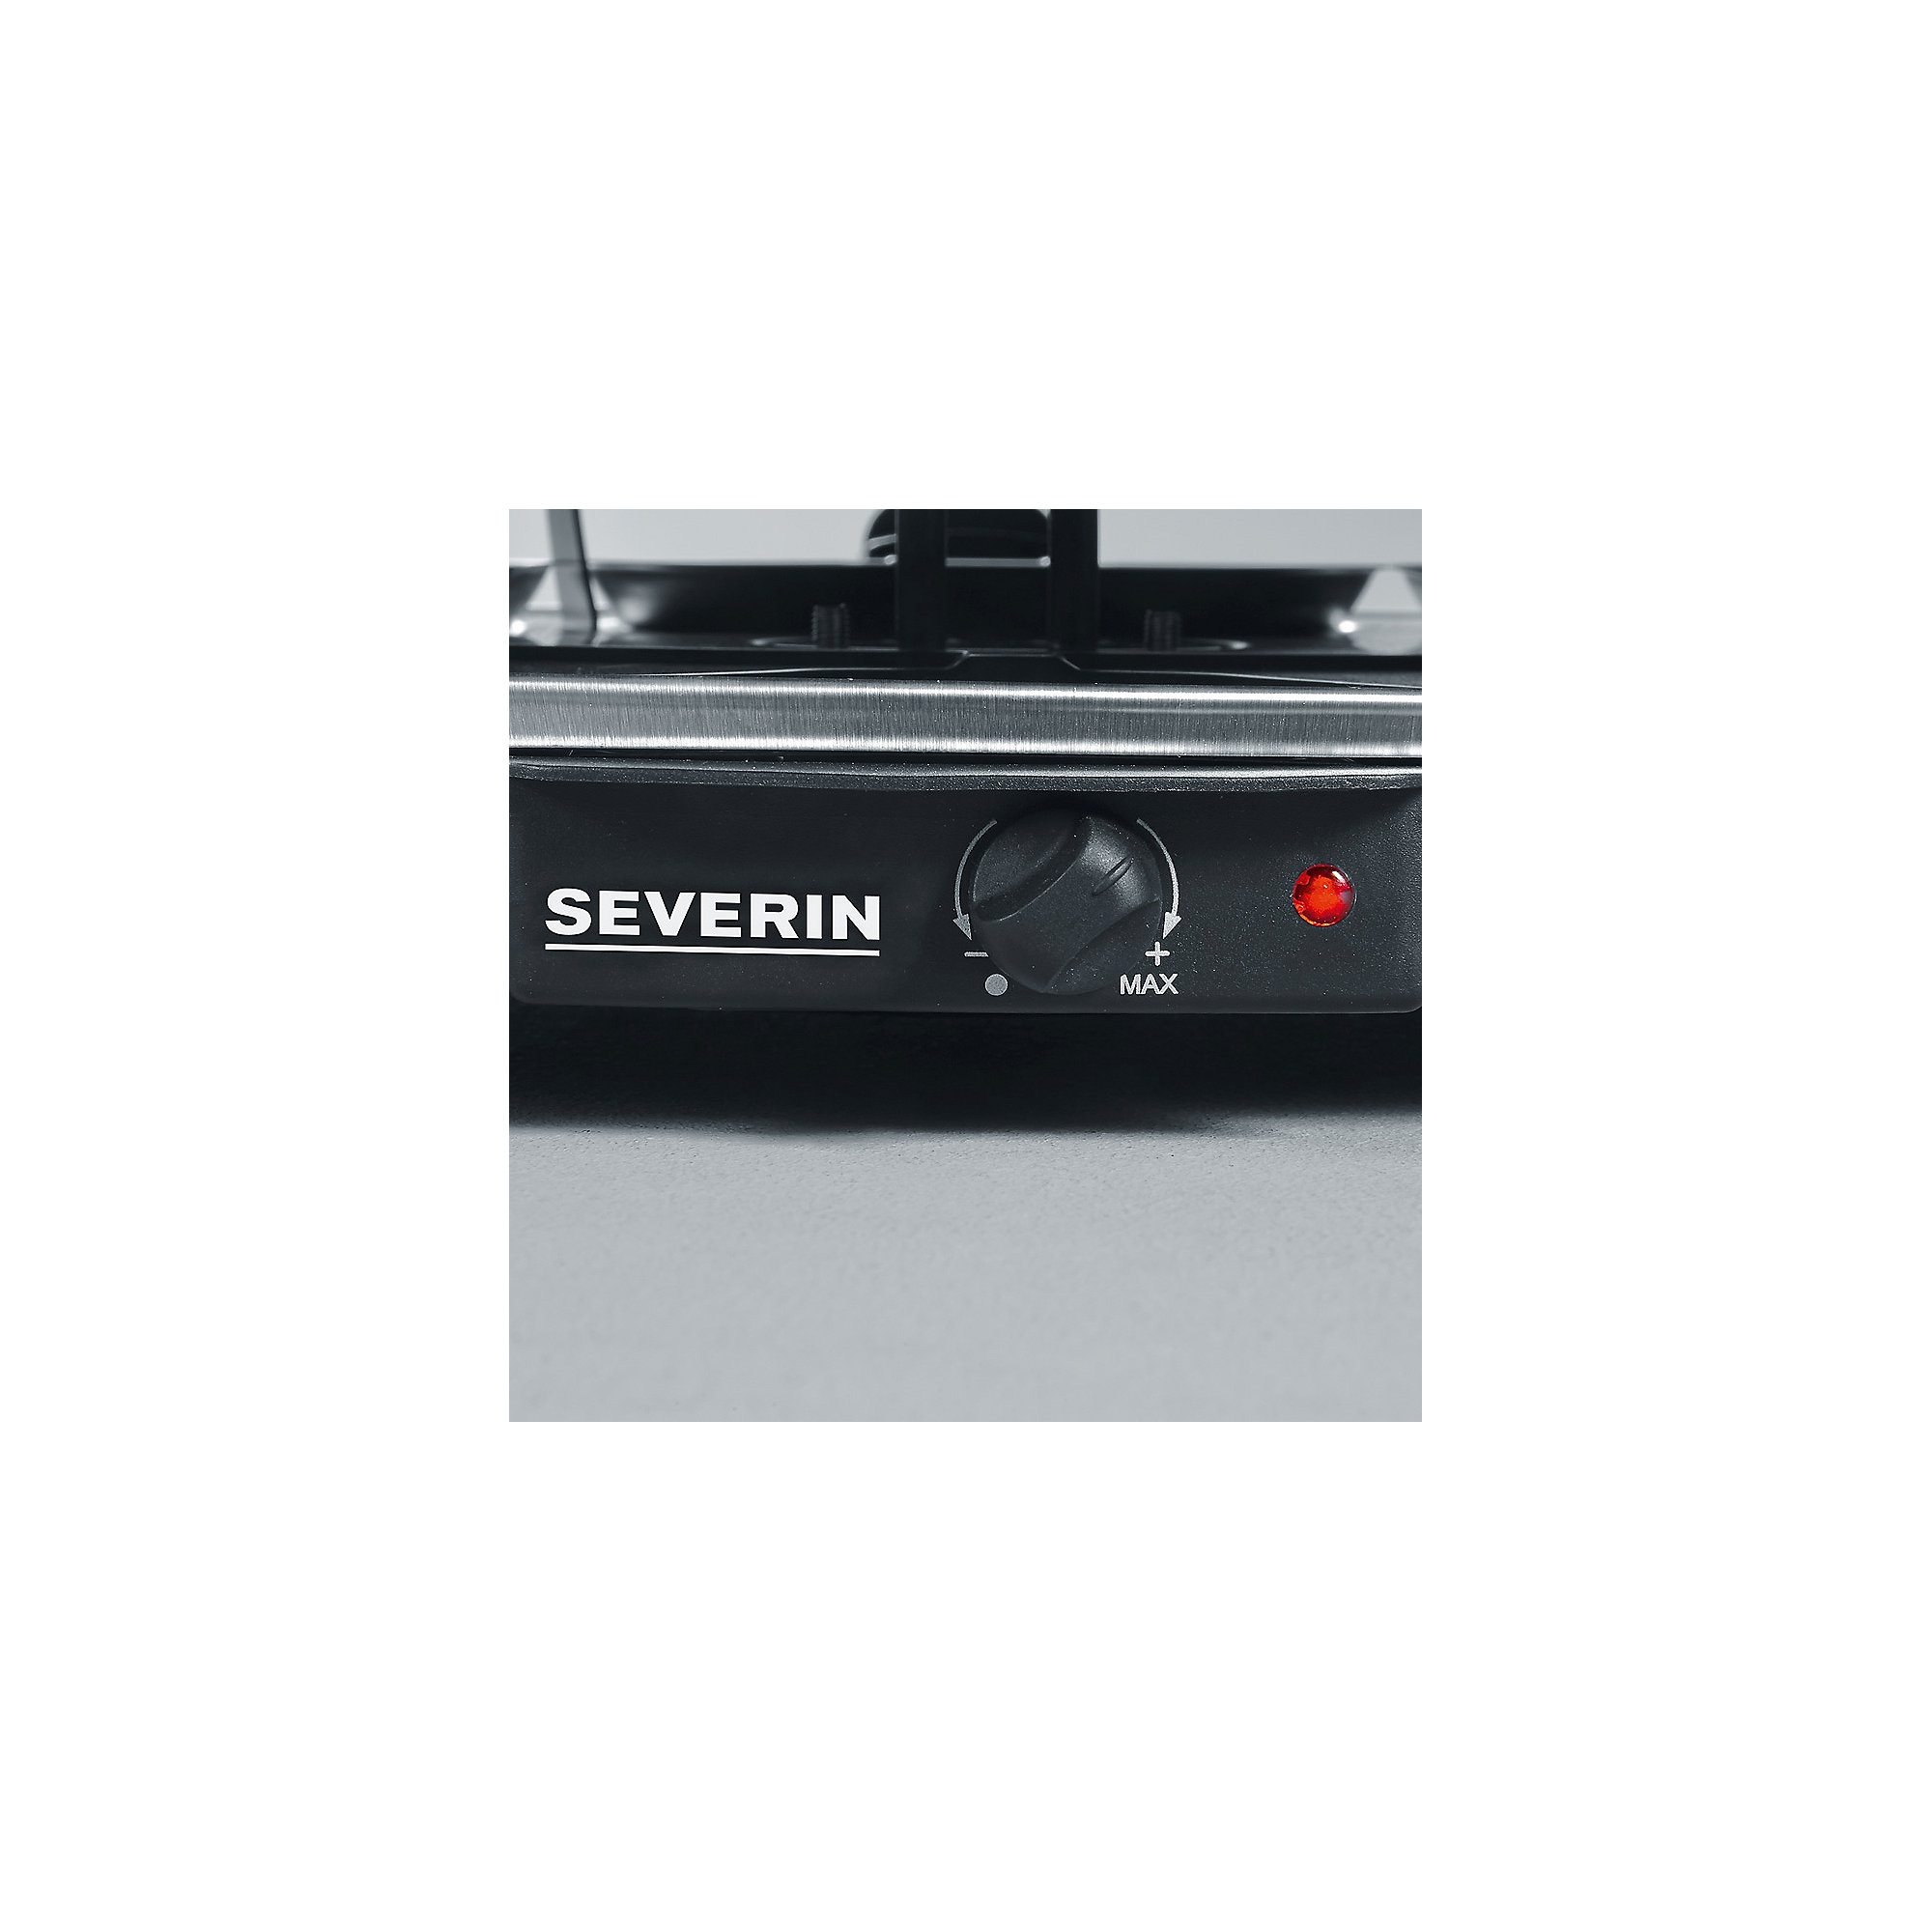 Severin RG 2681 Raclette-Partygrill schwarz